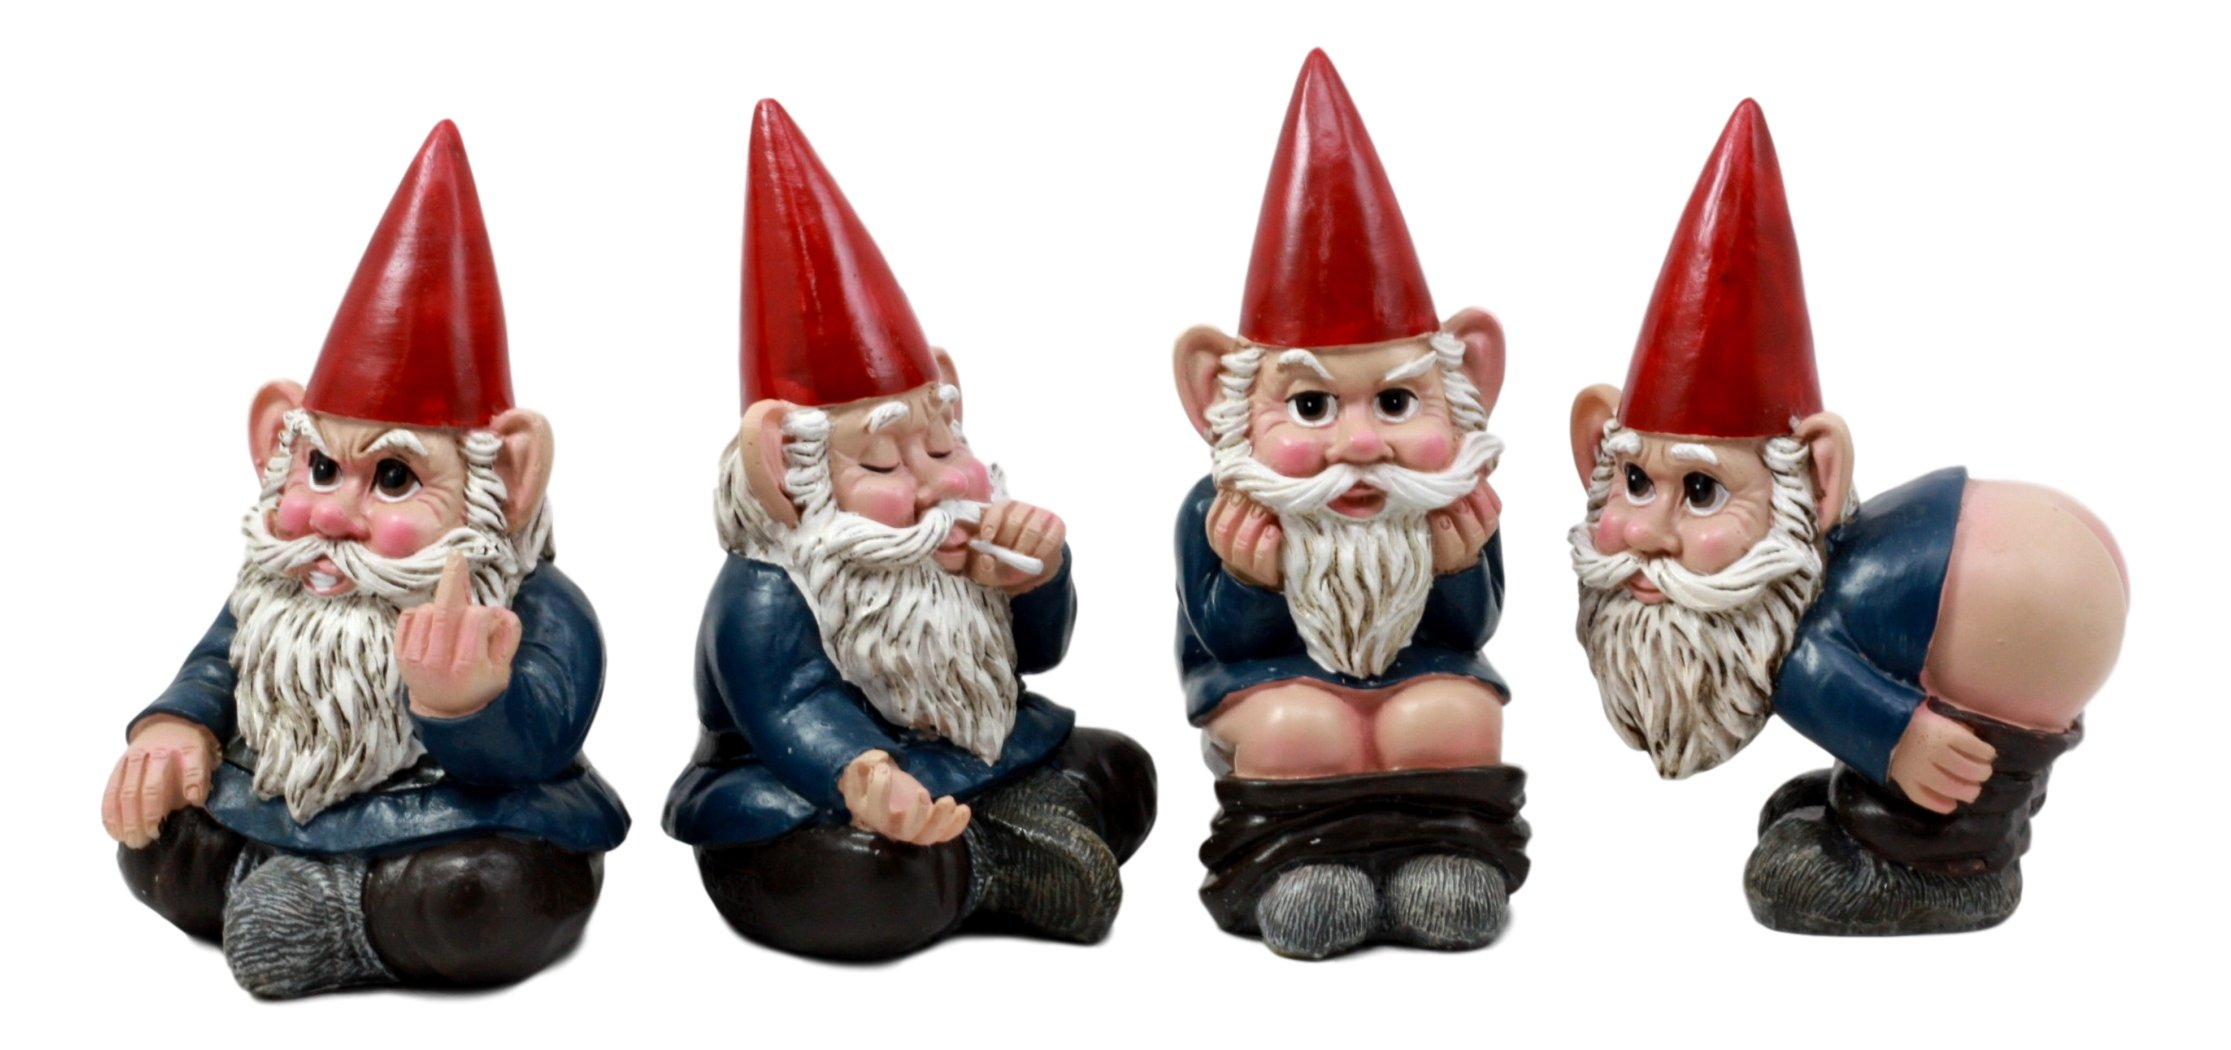 """Gnome 4: Ebros 4"""" Tall Badass Naughty Gnome Figurines Collectible"""